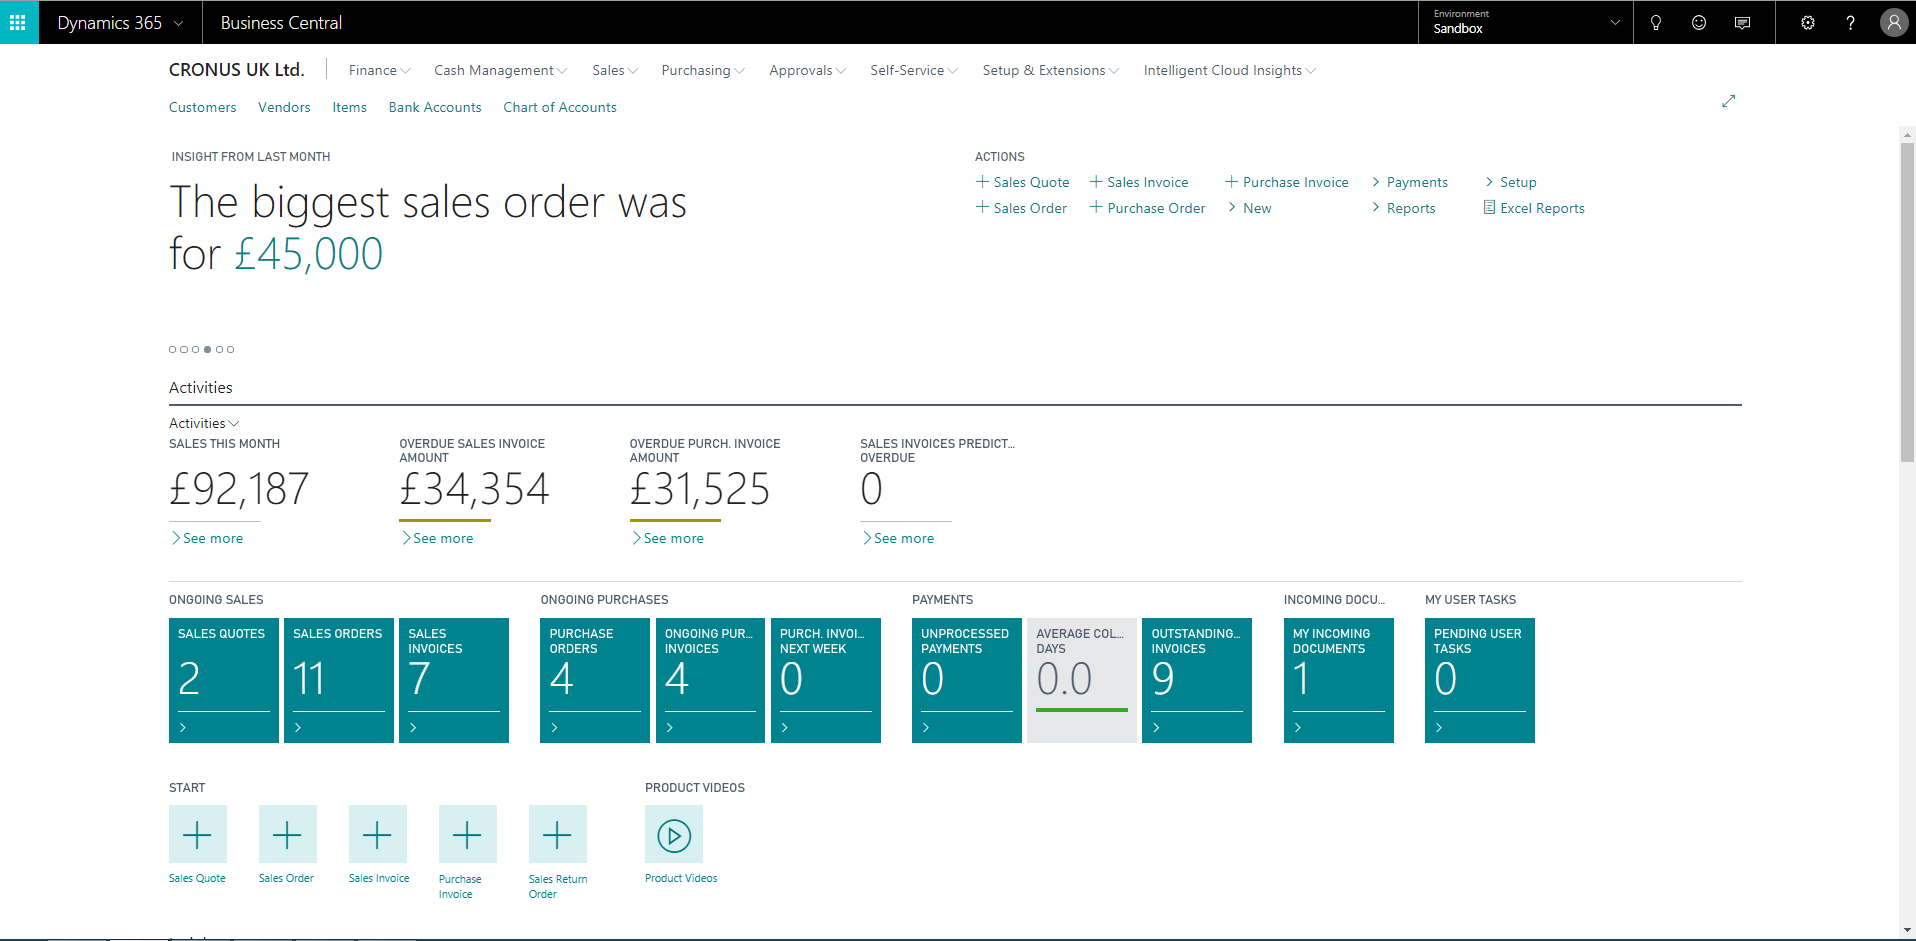 User interface of Microsoft Dynamics 365 Business Central